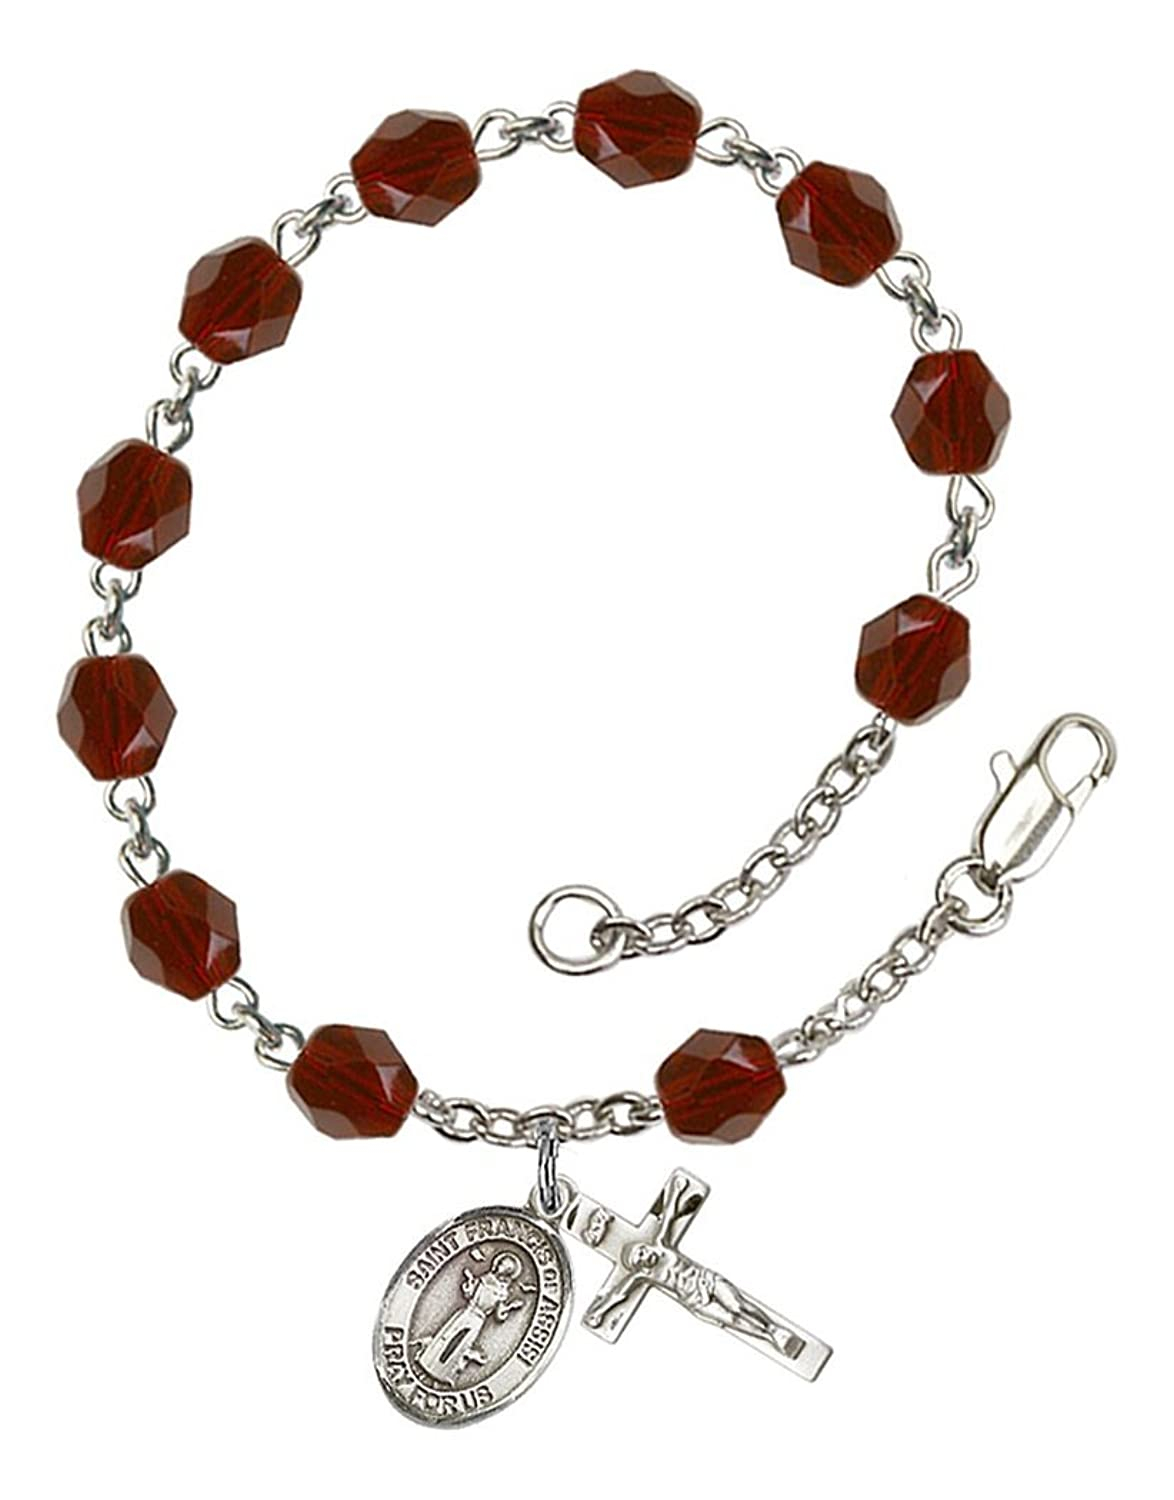 January Birth Month Bead Rosary Bracelet with Saint Francis of Assisi Petite Charm, 7 1/2 Inch